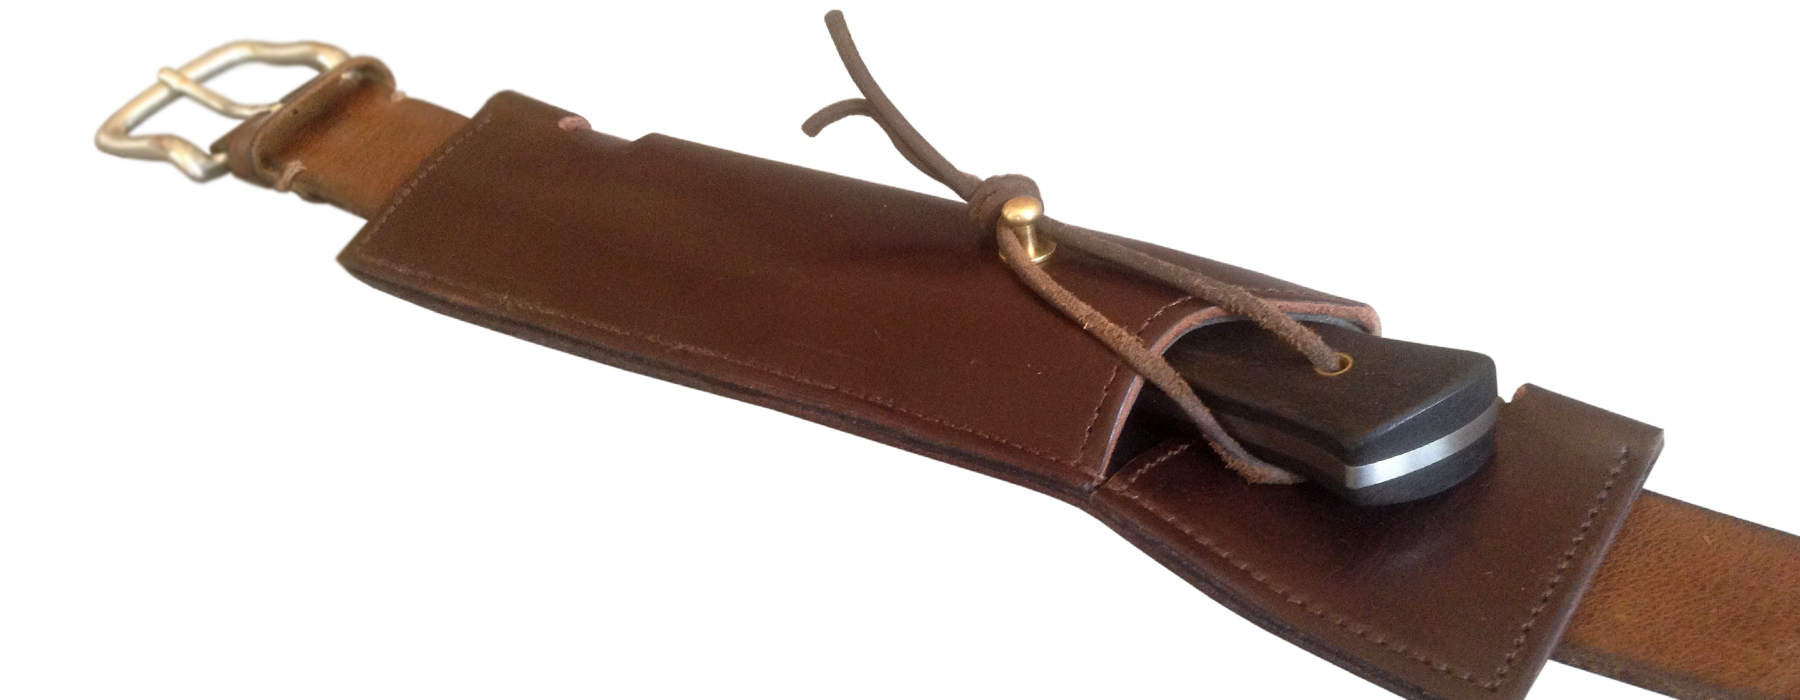 de curae | knife sheath – Thorsten Schlesinger